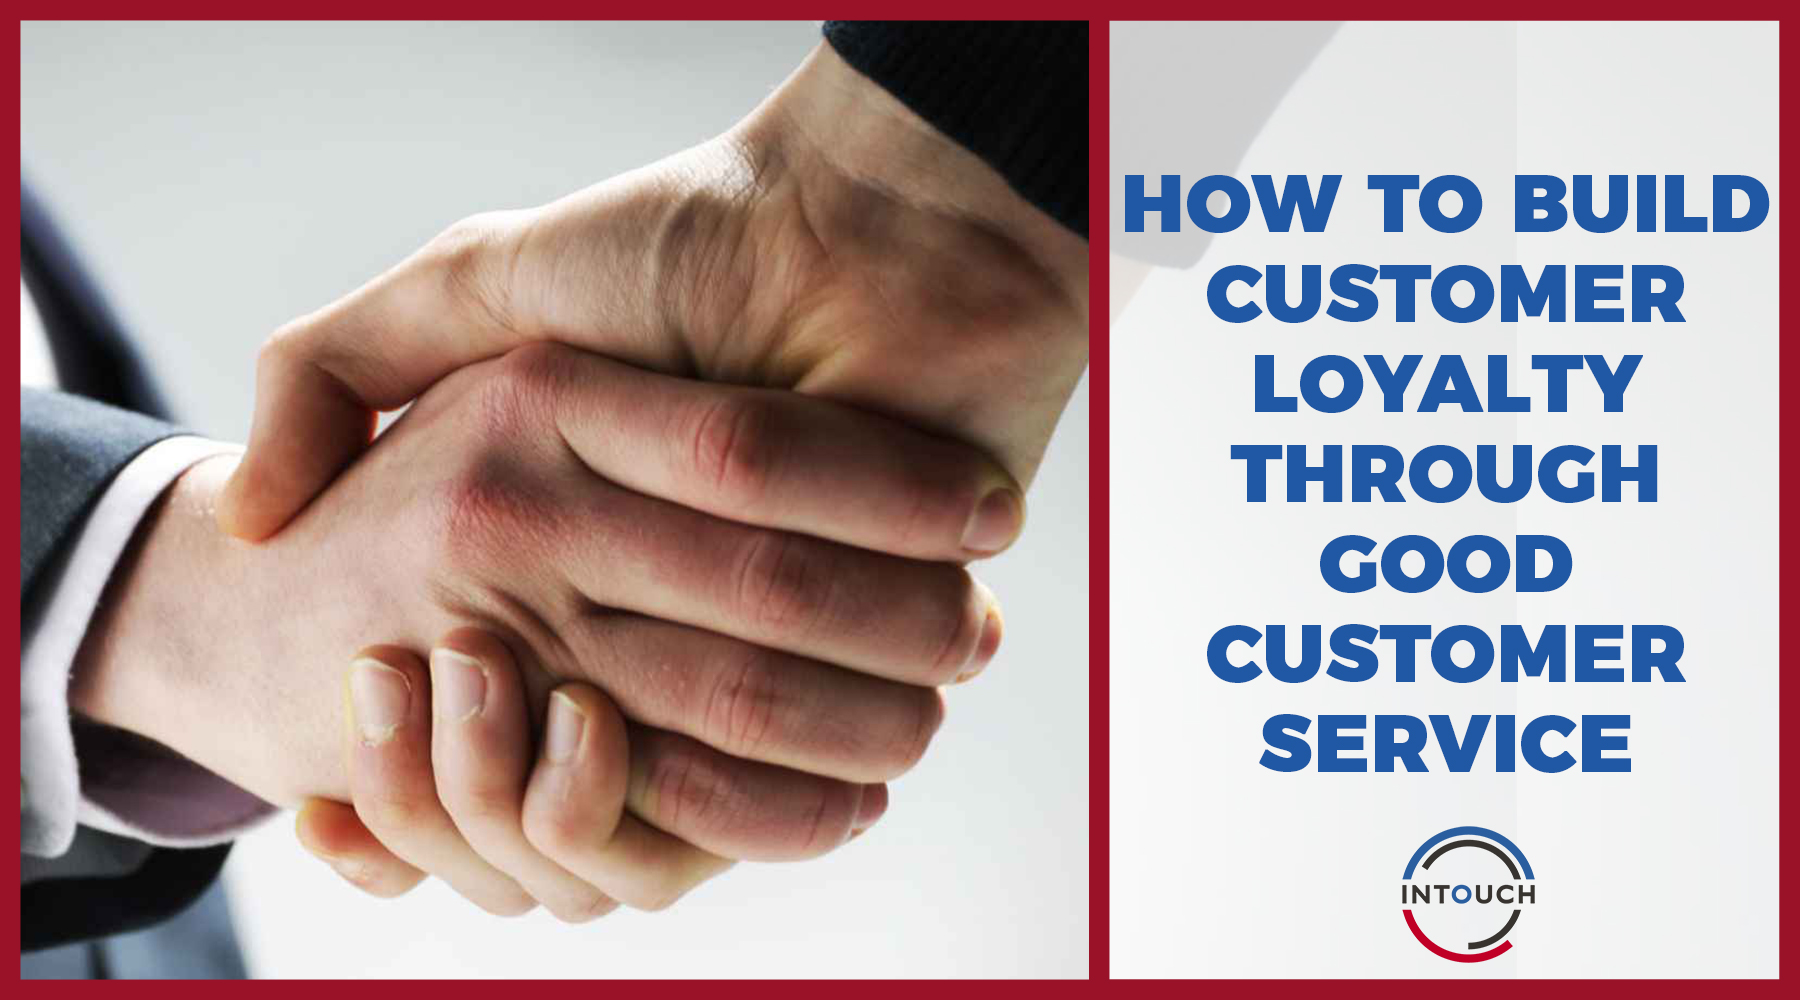 Watch How to Build Customer Loyalty video